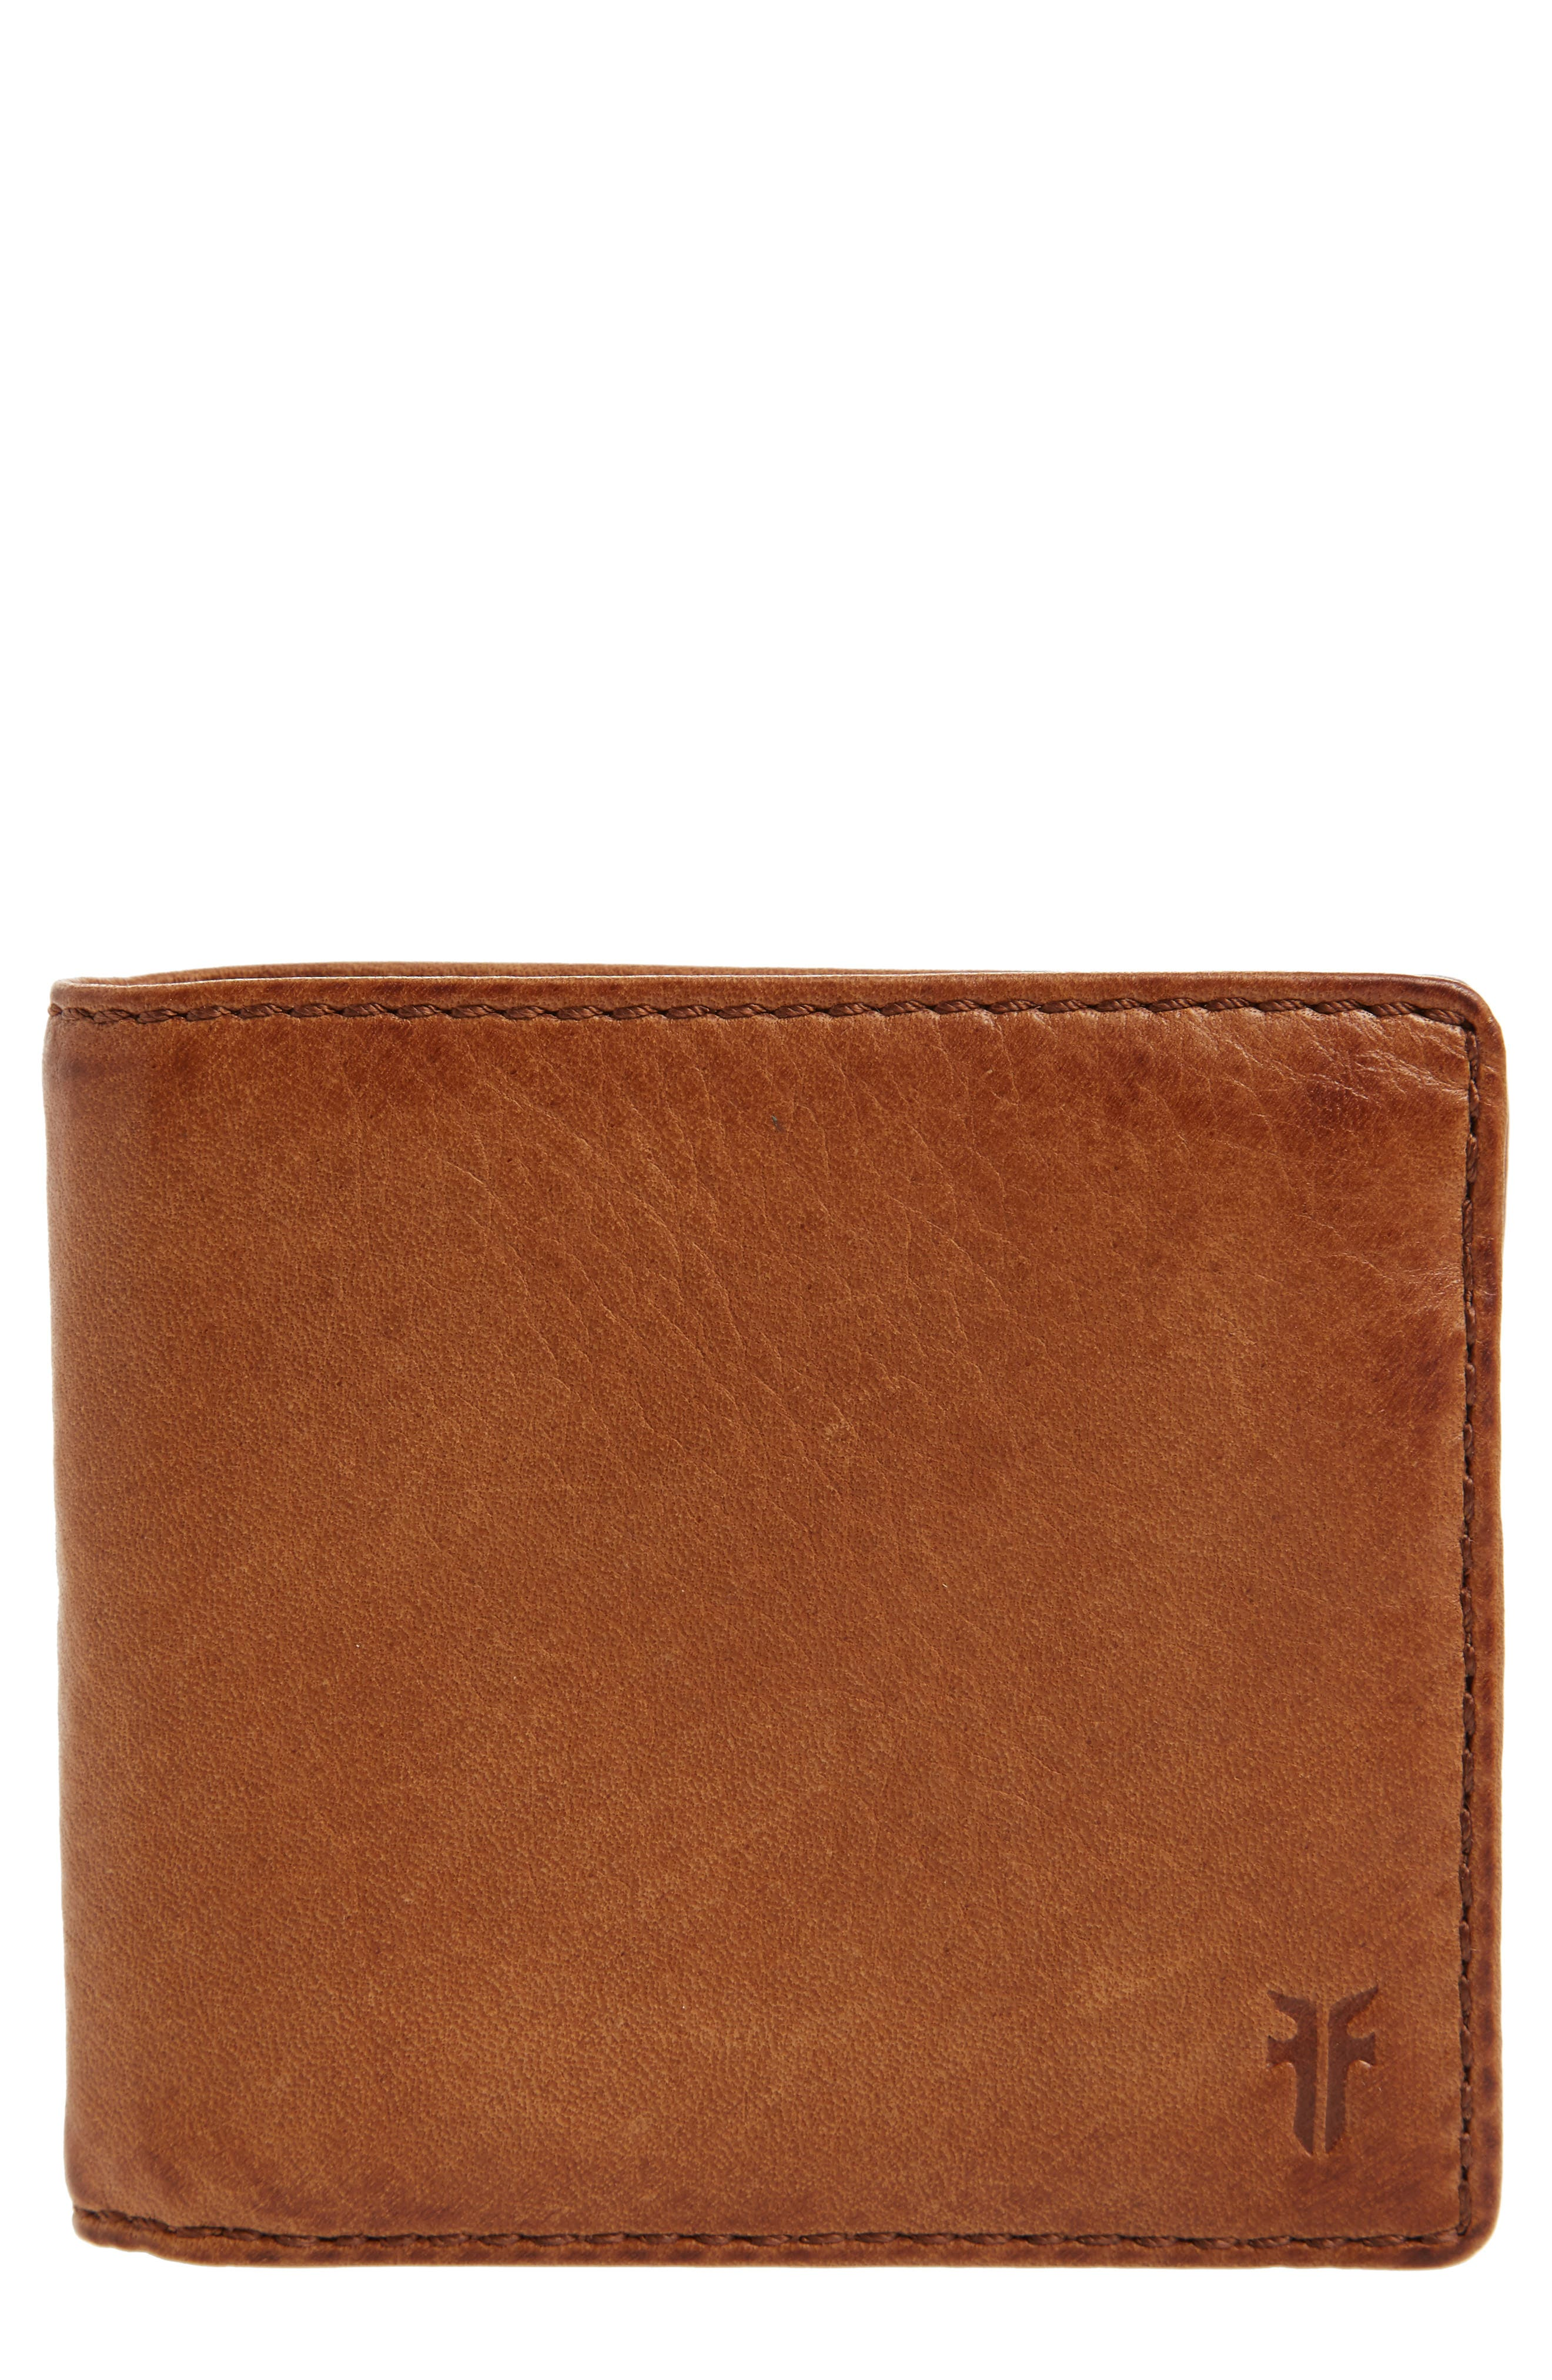 Frye Oliver Leather Wallet